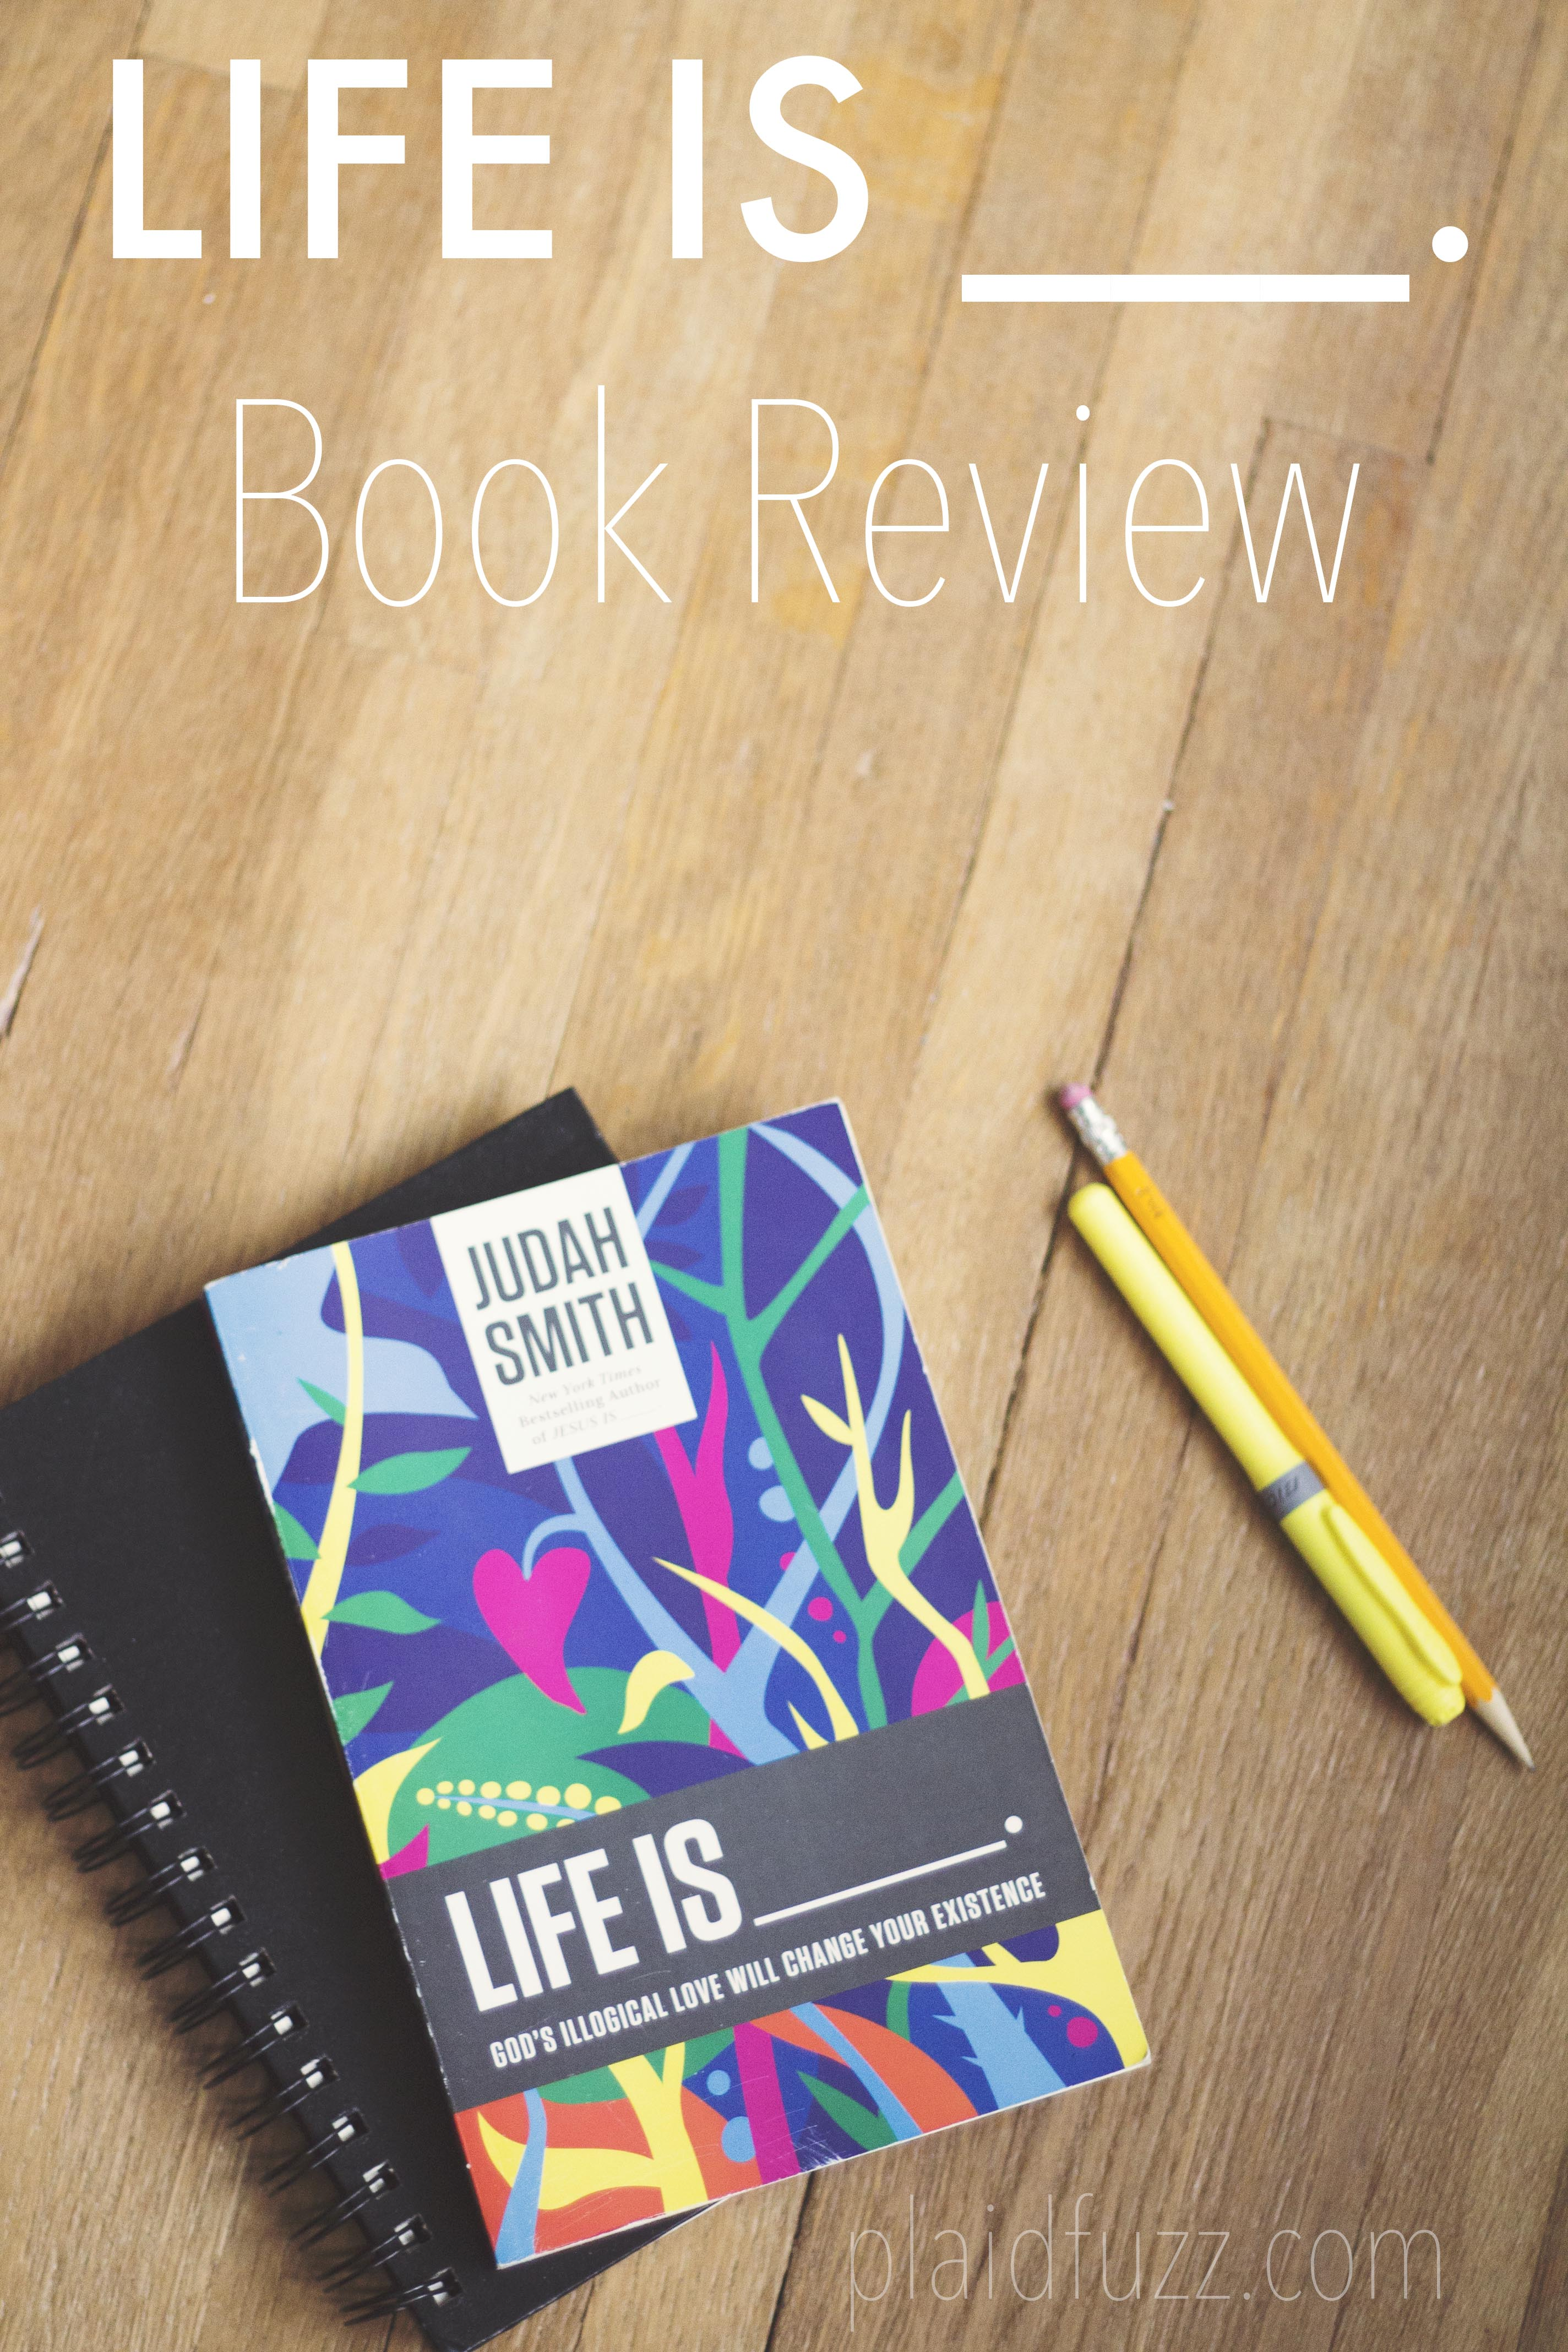 Life Is ____. Book Review